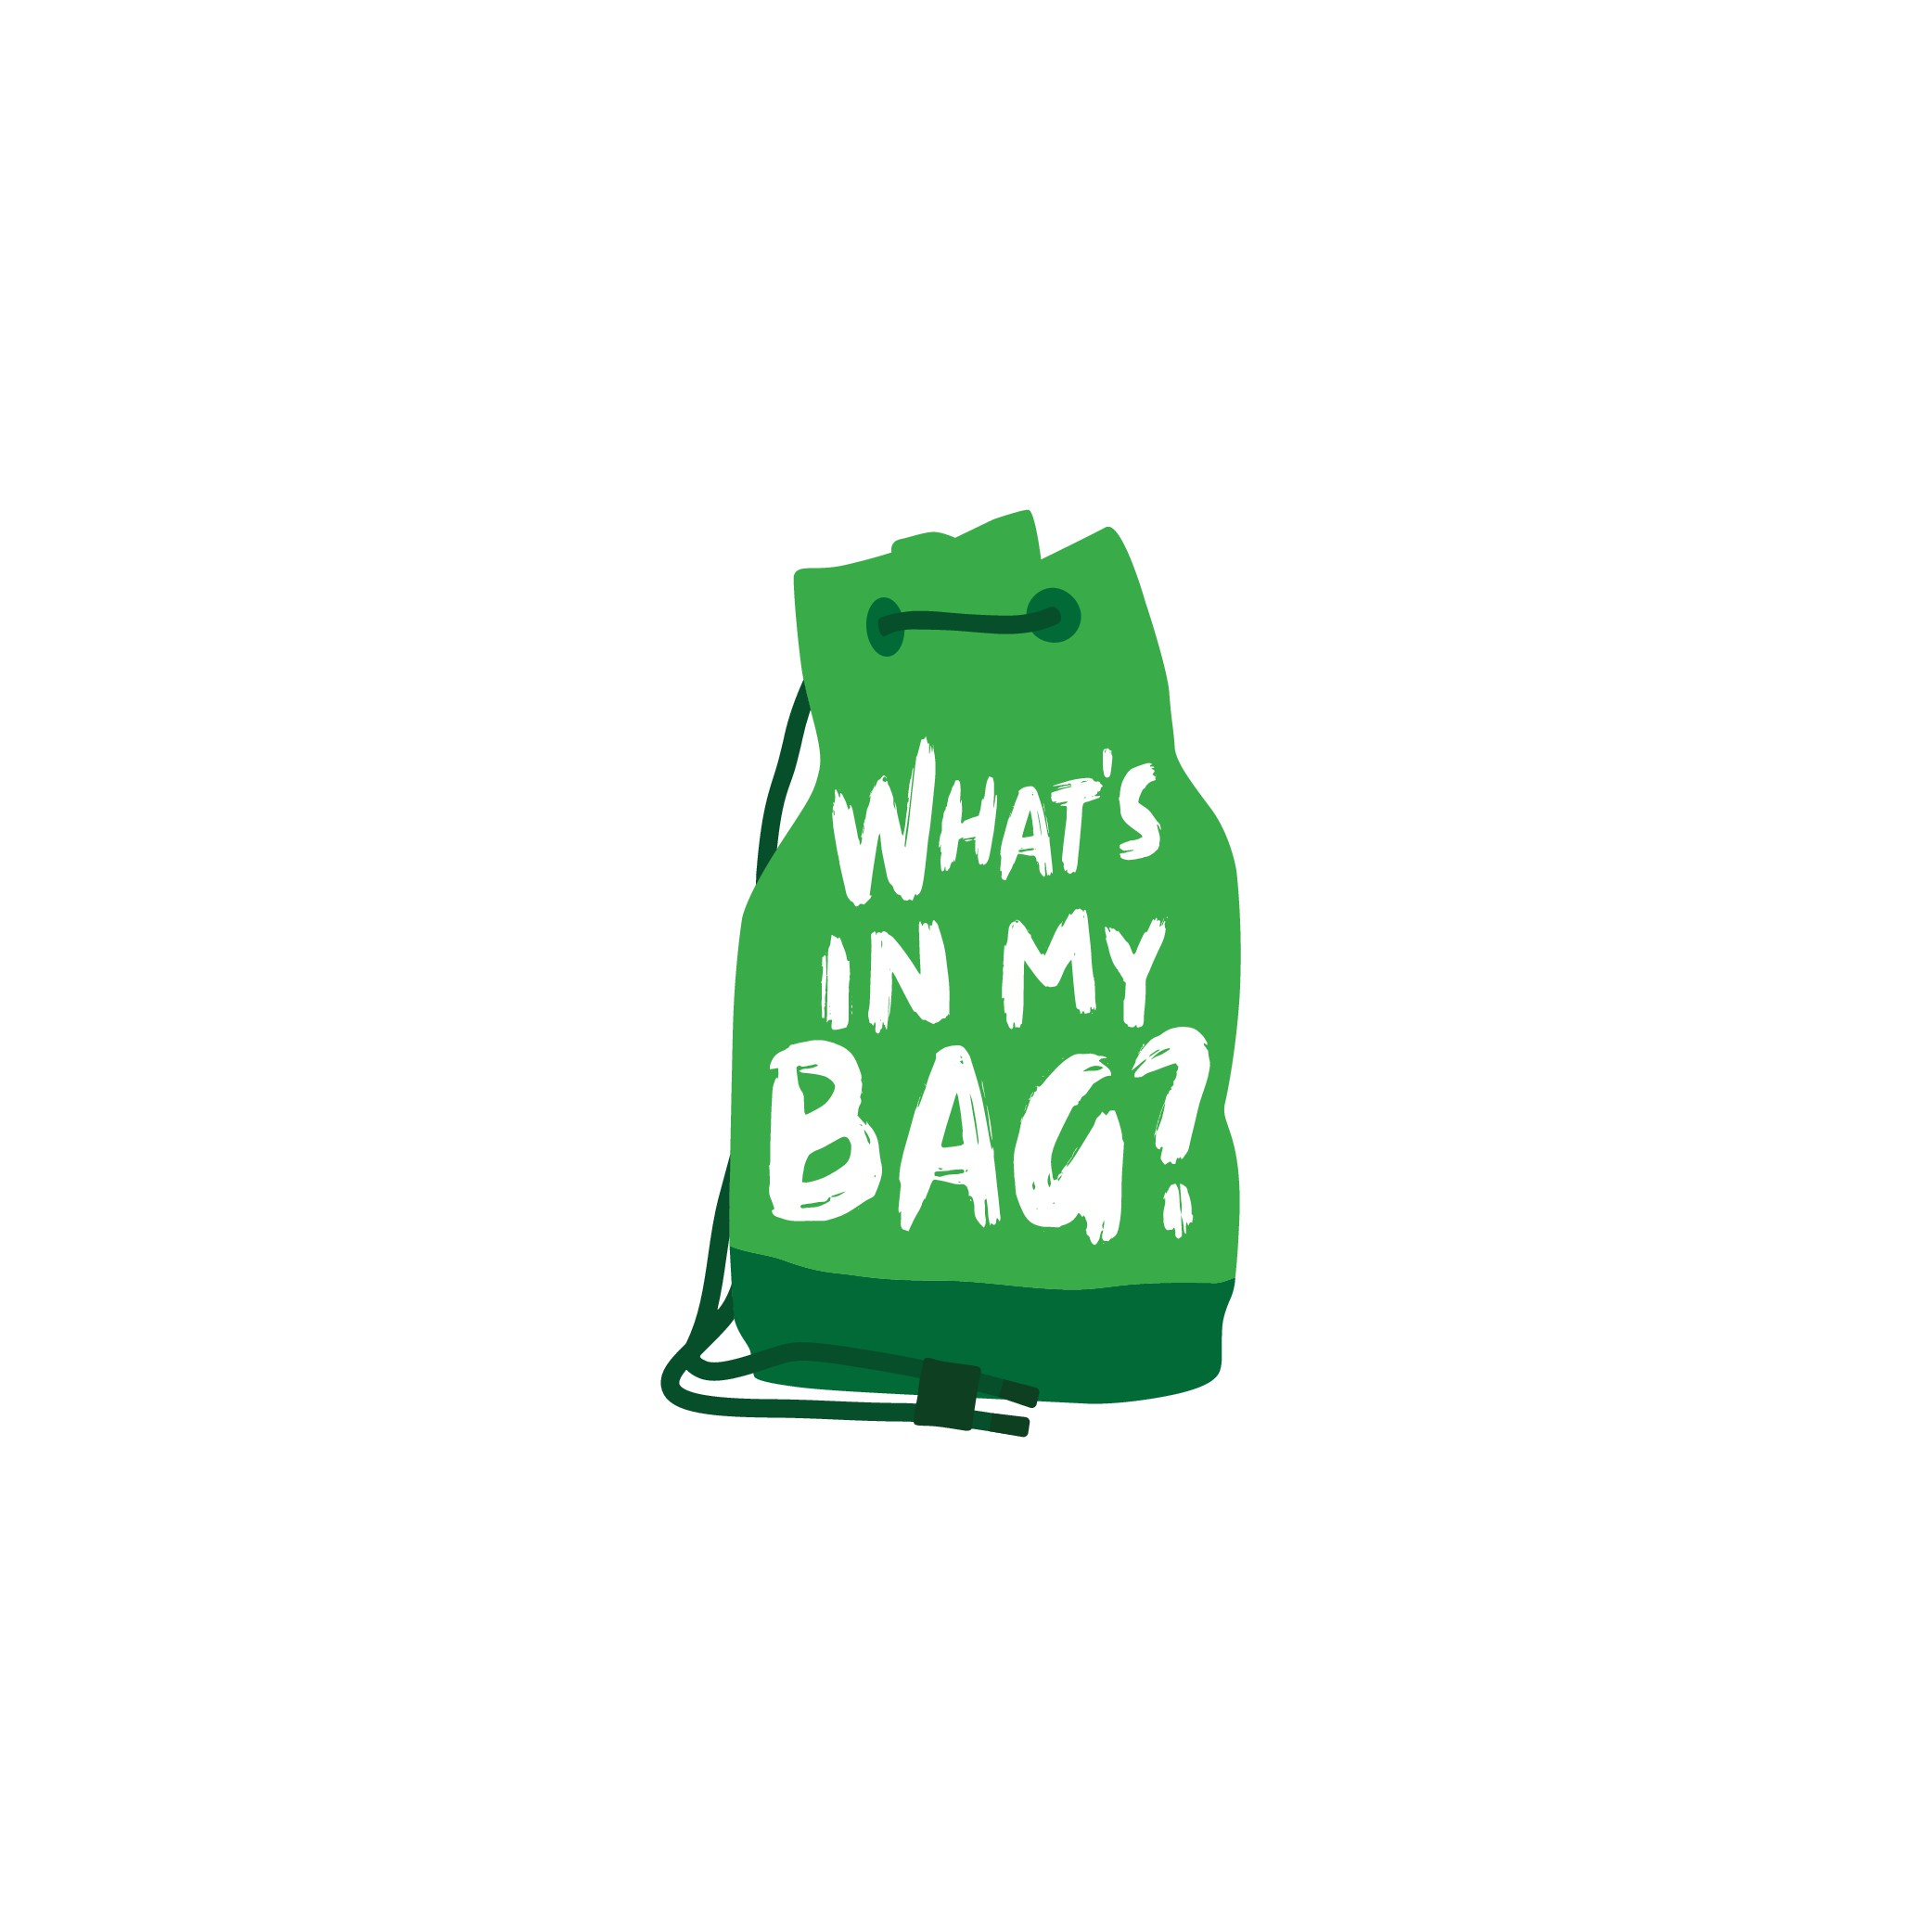 What's in my bag? A logo for the bag of your life